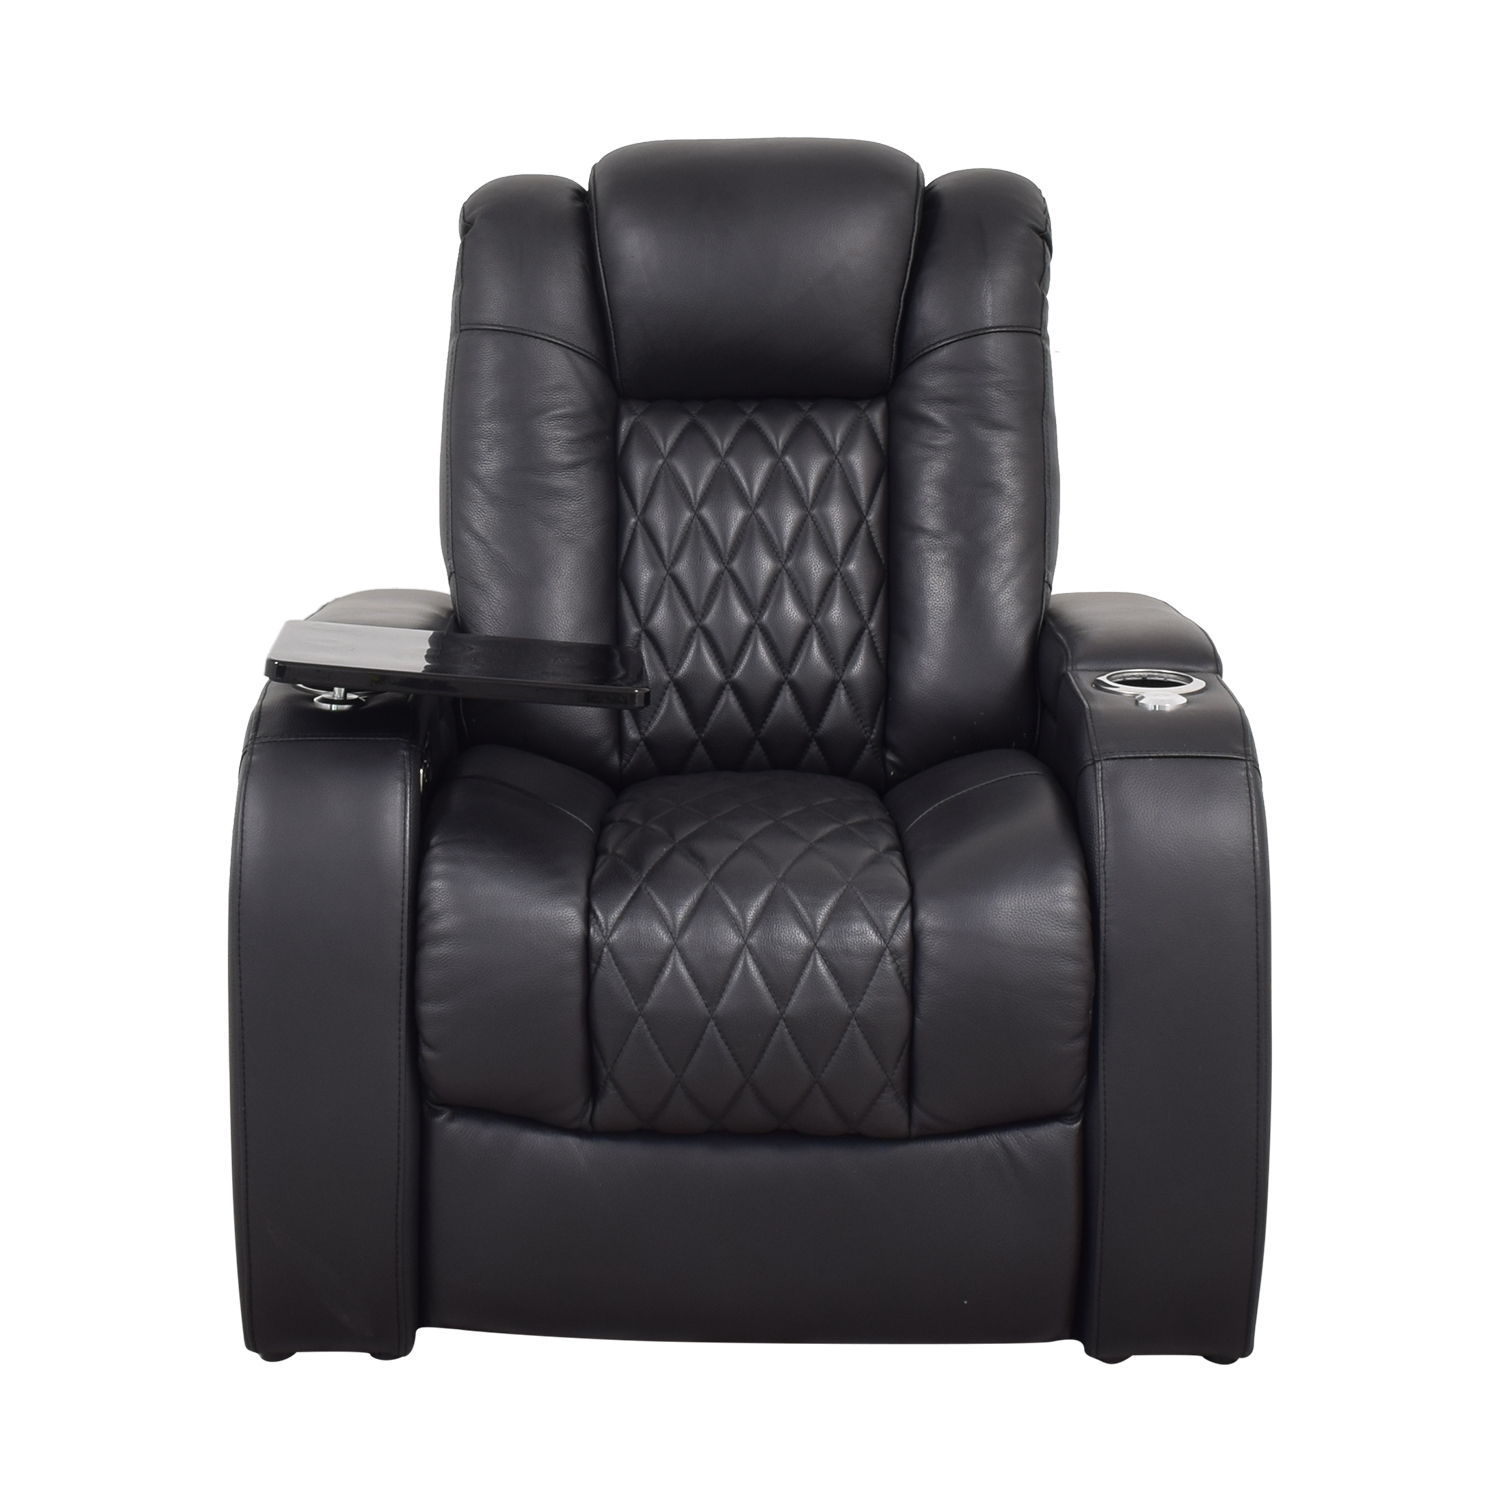 Seatcraft Seatcraft Diamante Home Theater Seating Leather Power Recliner ma